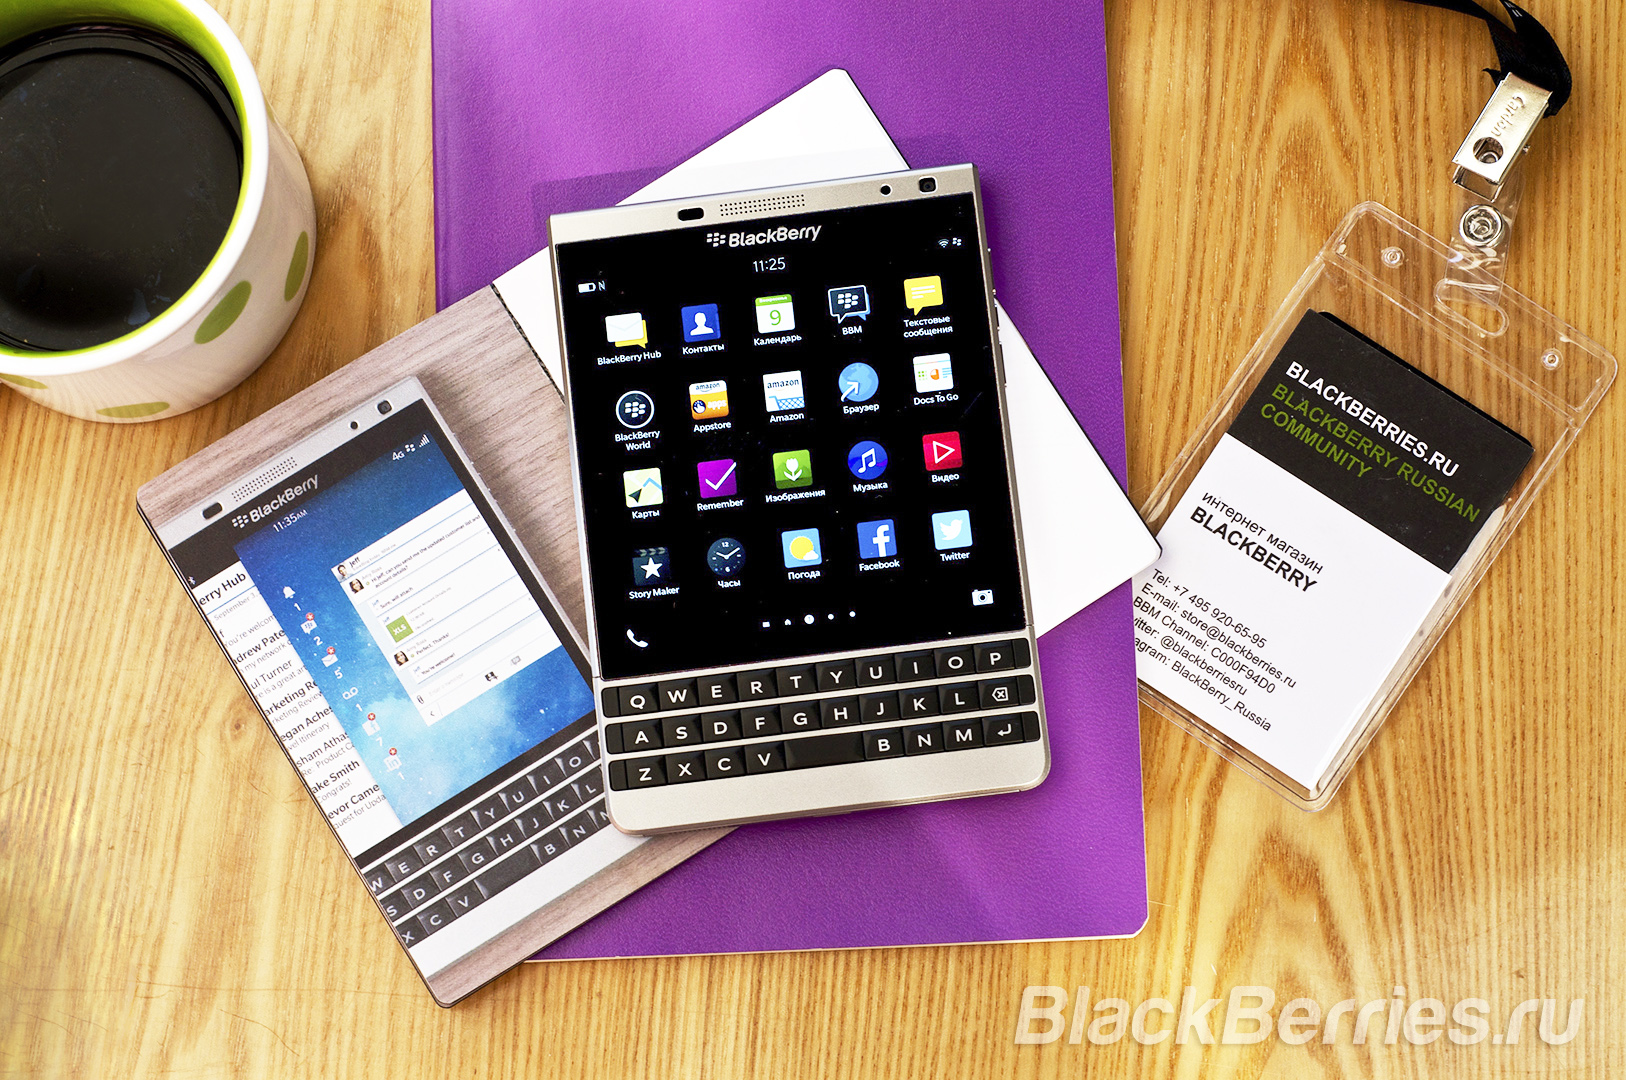 BlackBerry-Passport-Silver-Edition-Review-29